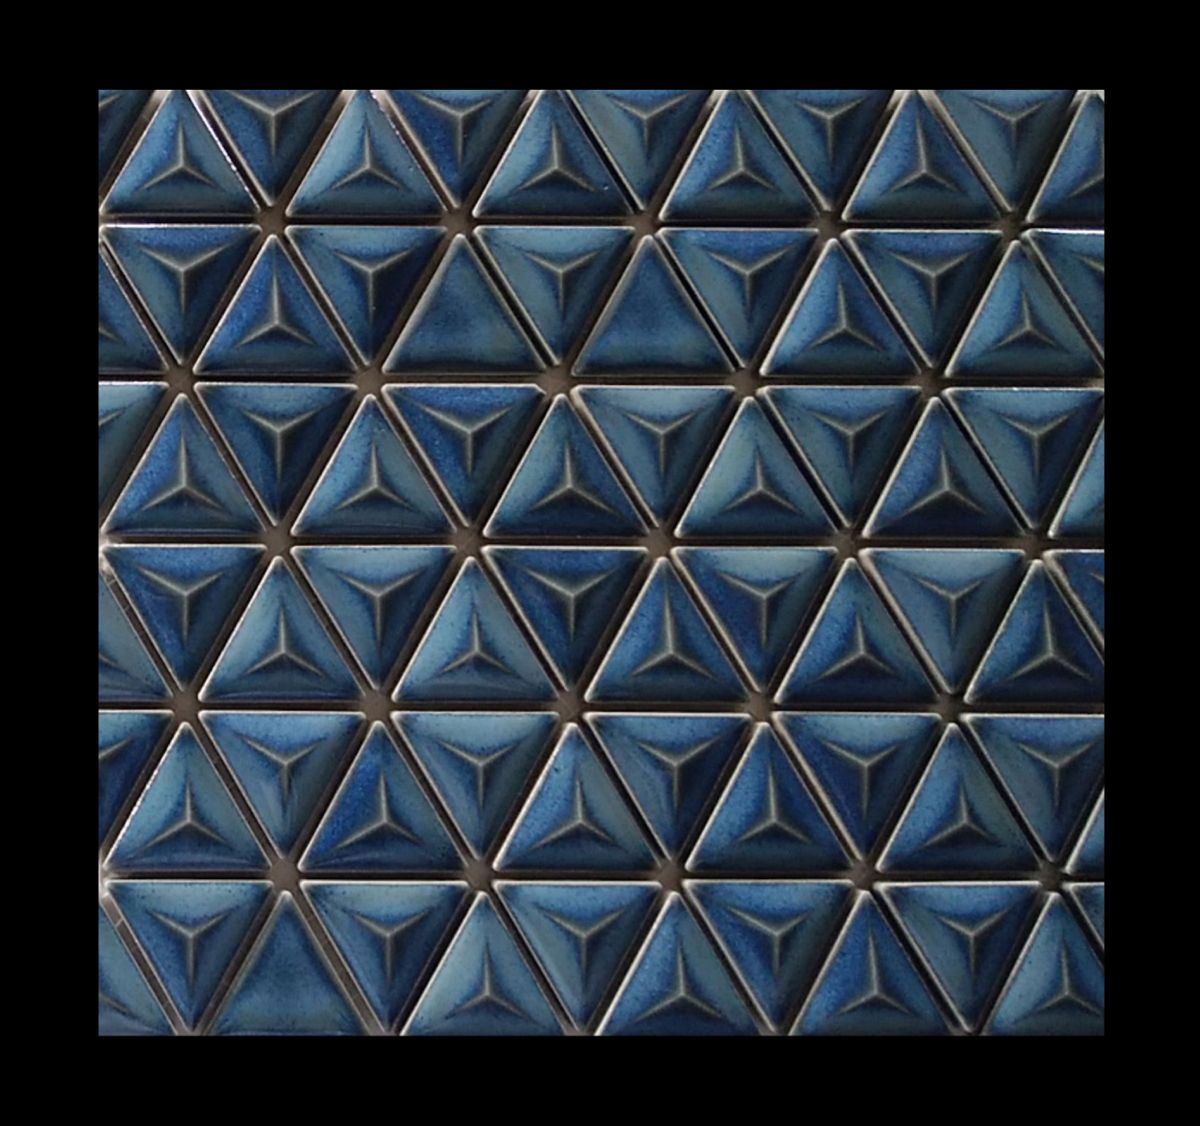 24 7 S Pyramid Japanese Mosaic Tile In 2021 Mosaic Triangle Tiles Pool Designs